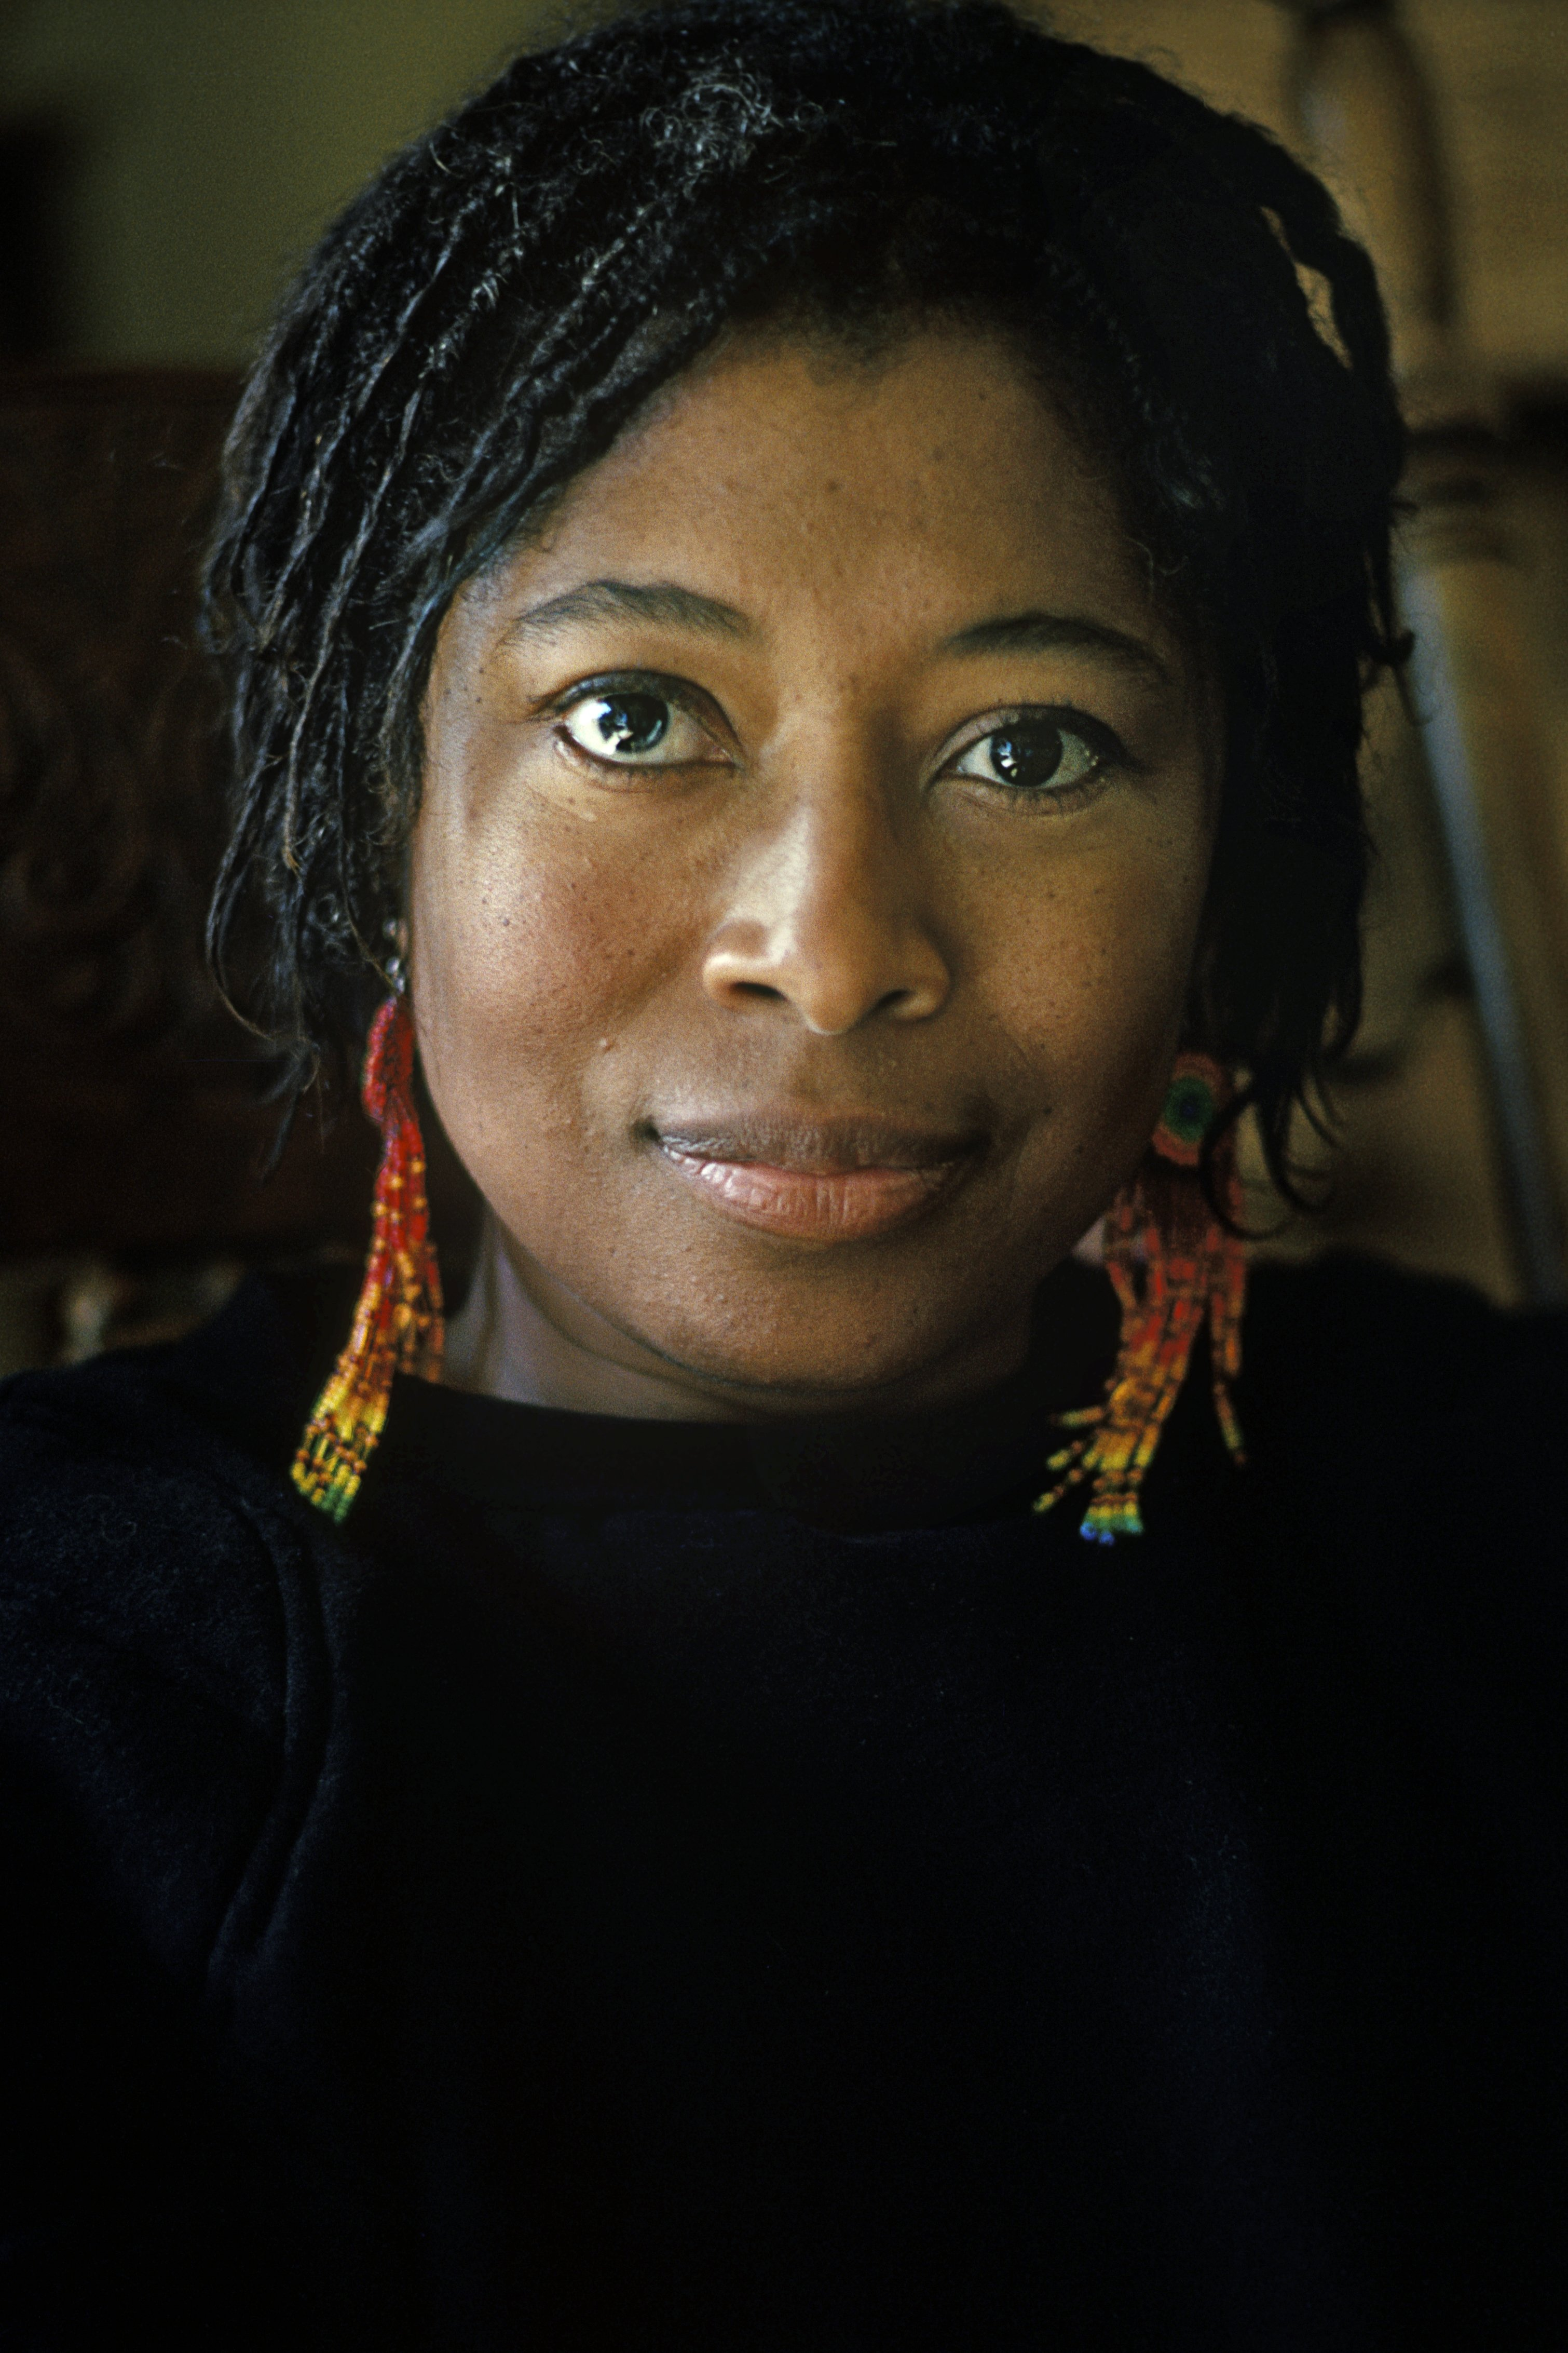 Alice Walker , Best known for her novel 'The Color Purple', poses for portrait at home in San Francisco in January, 1985 | Photo: Getty Images